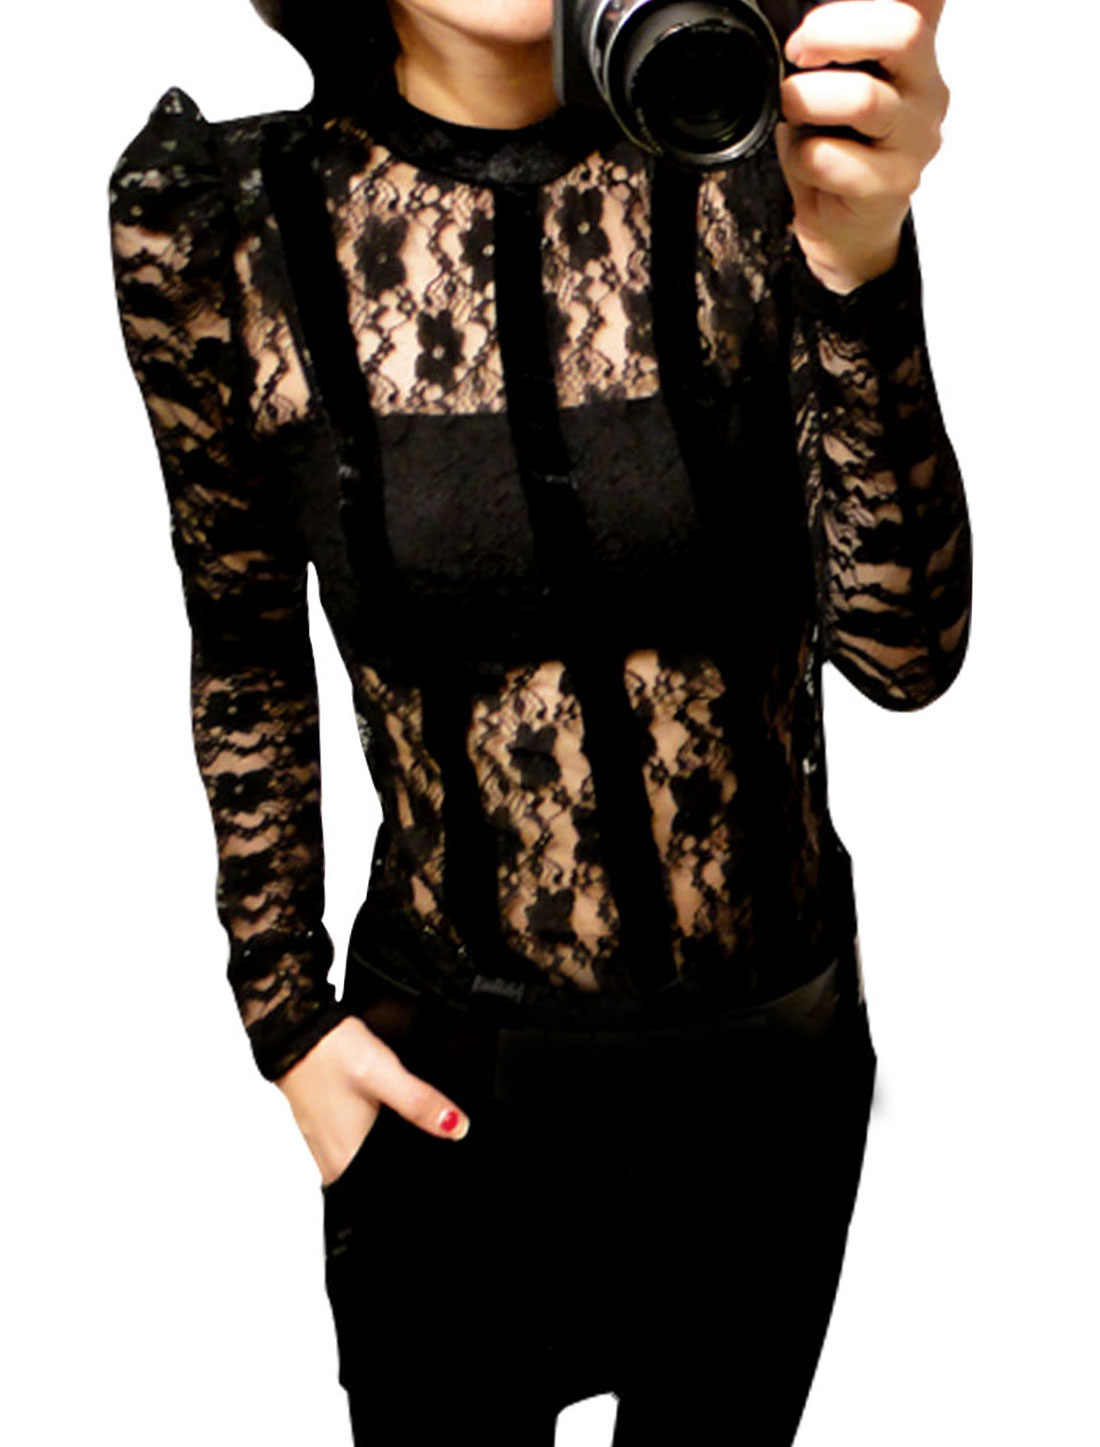 Women Back Hook Eye See-through Long Sleeve Flowers Design Chic Shirt Black XS